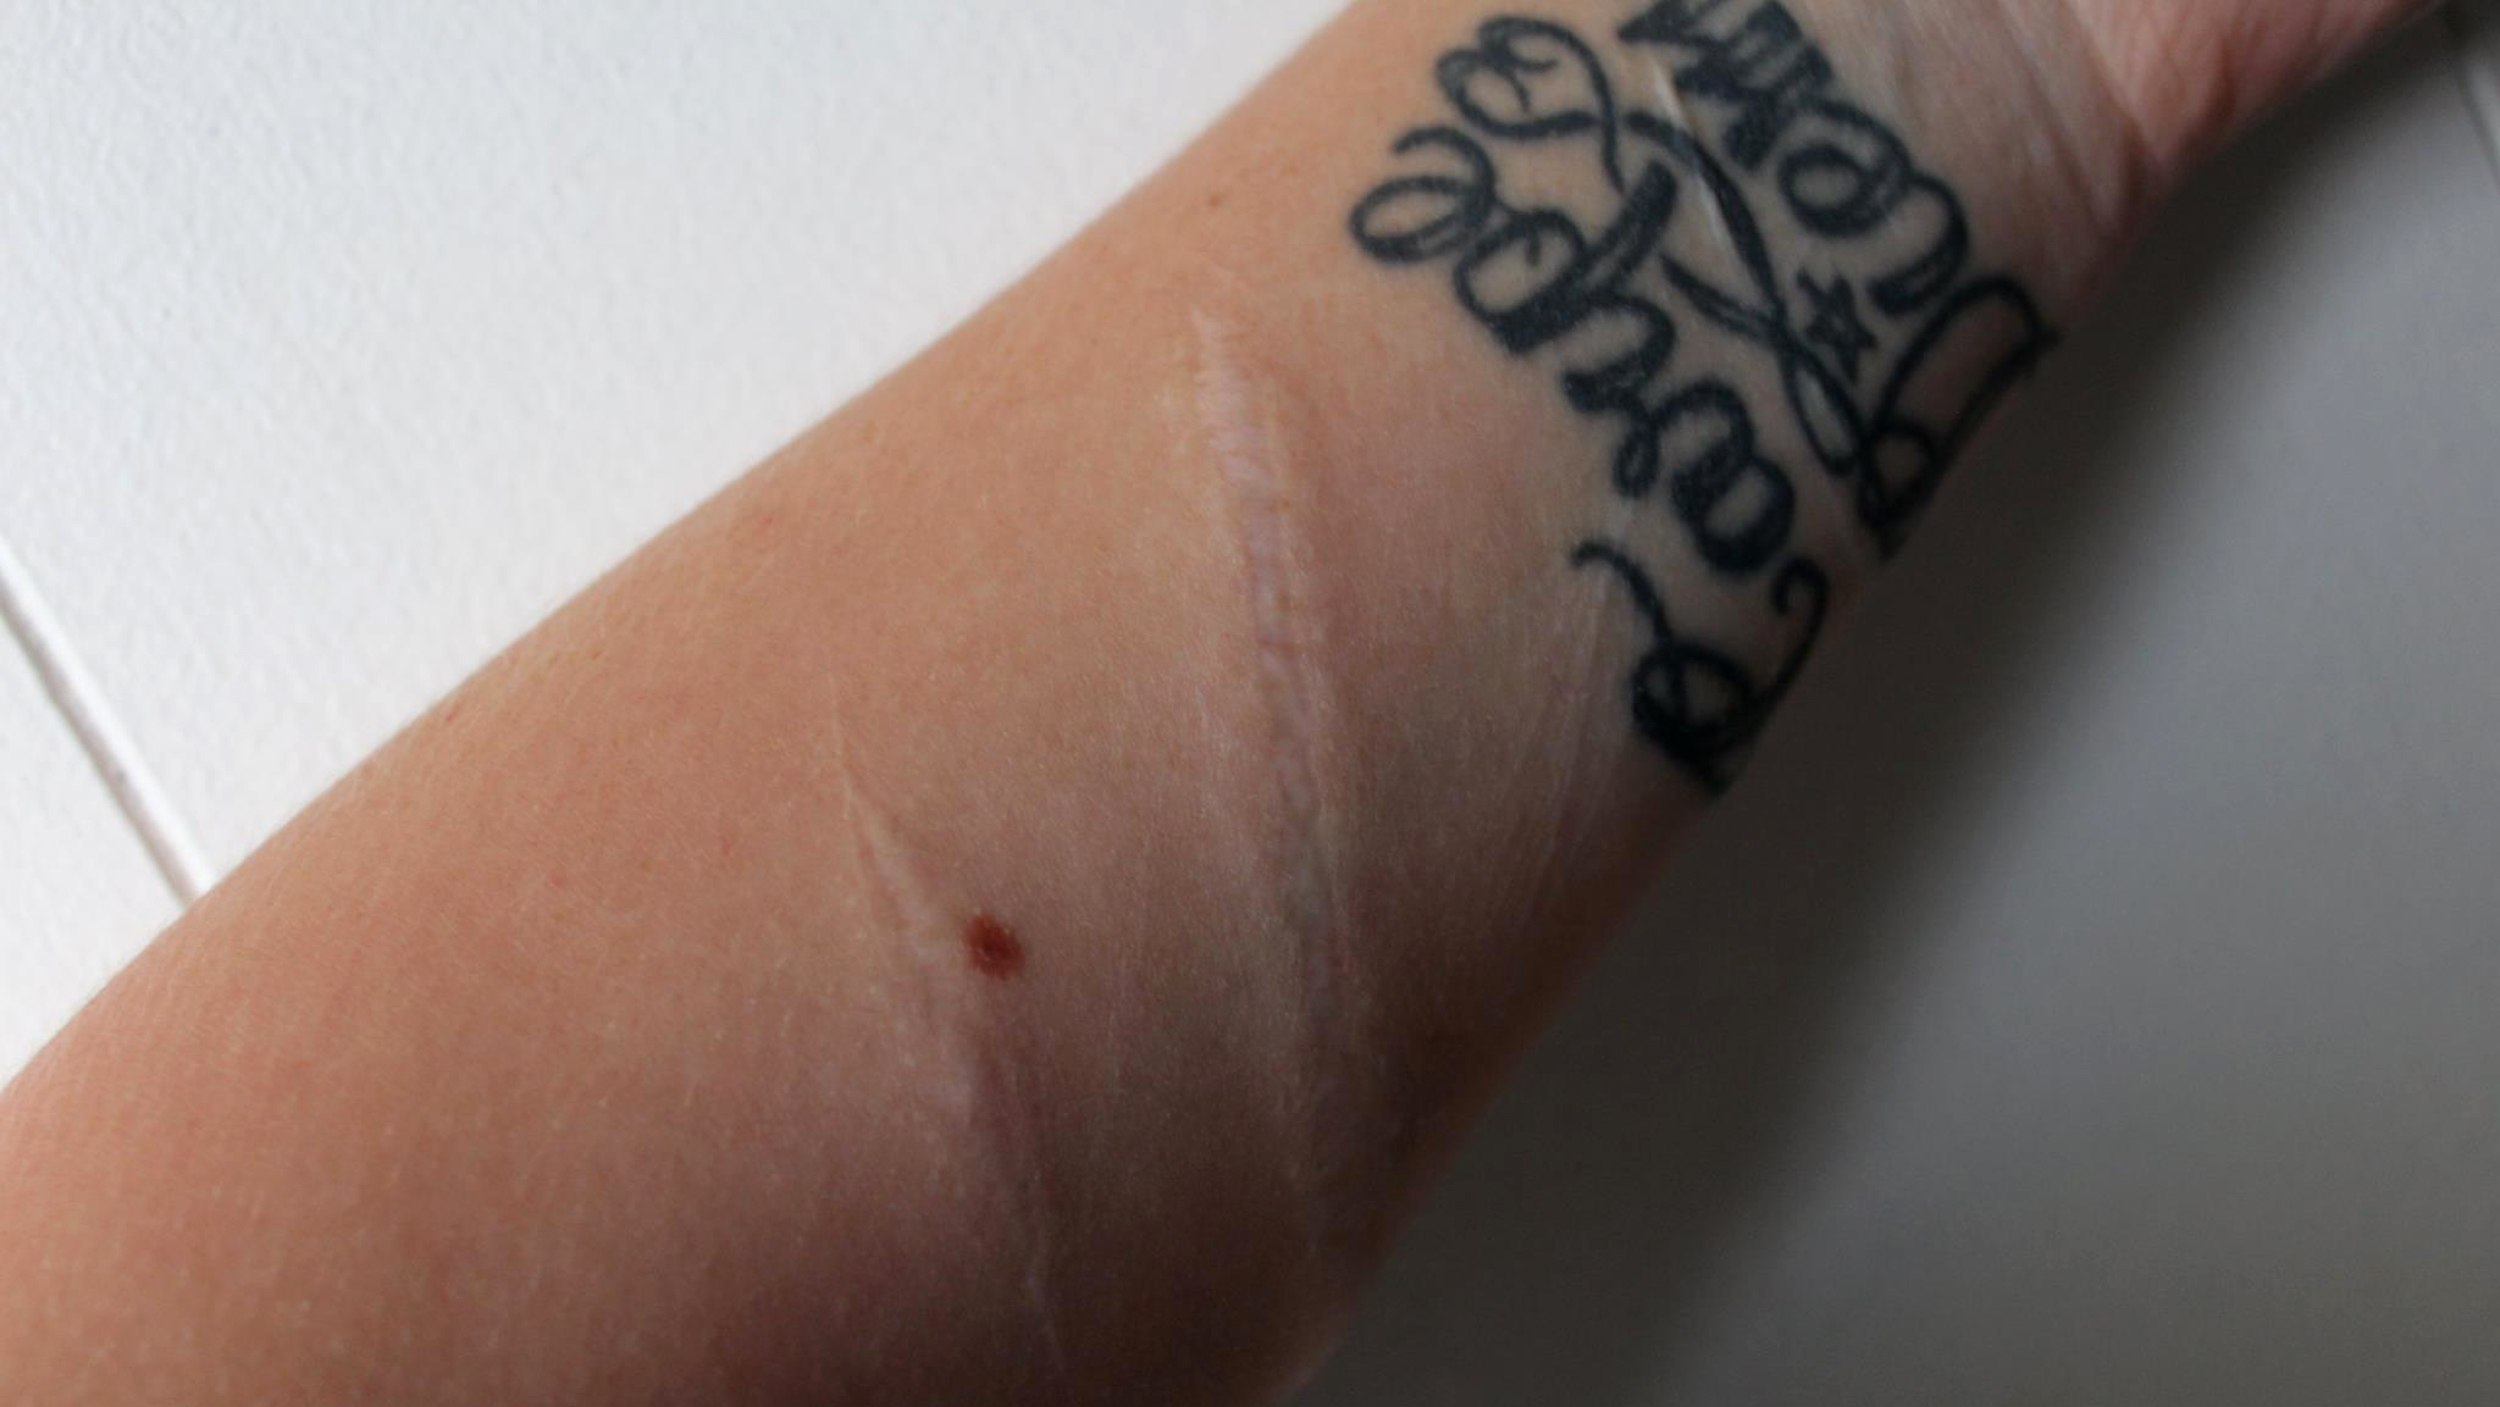 Woman posts scars from suicide attempt to help troubled for Tattoos over self harm scars pictures